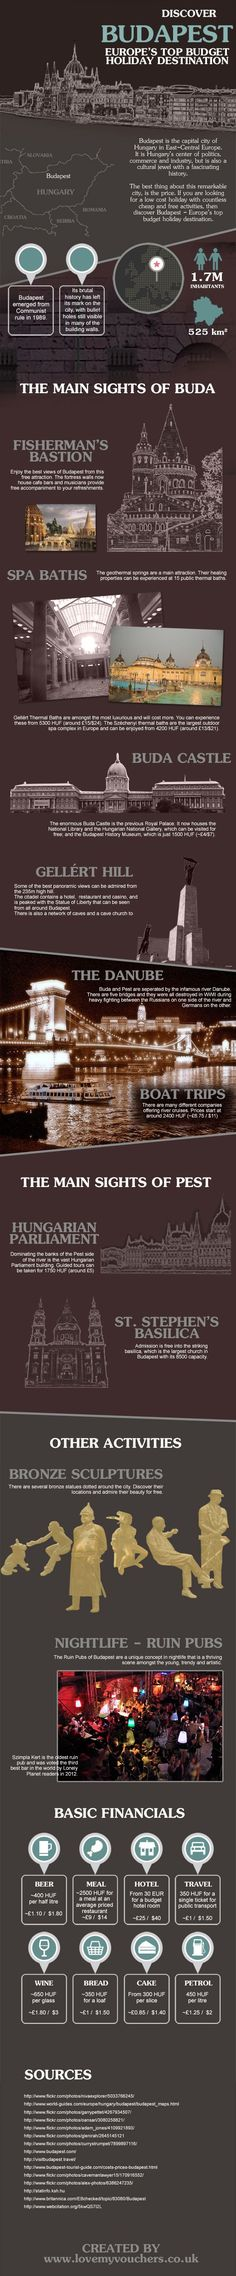 Want to learn more about Budapest than the basics? Contact us on www.facebook.com/behindbudapest!  #budapest